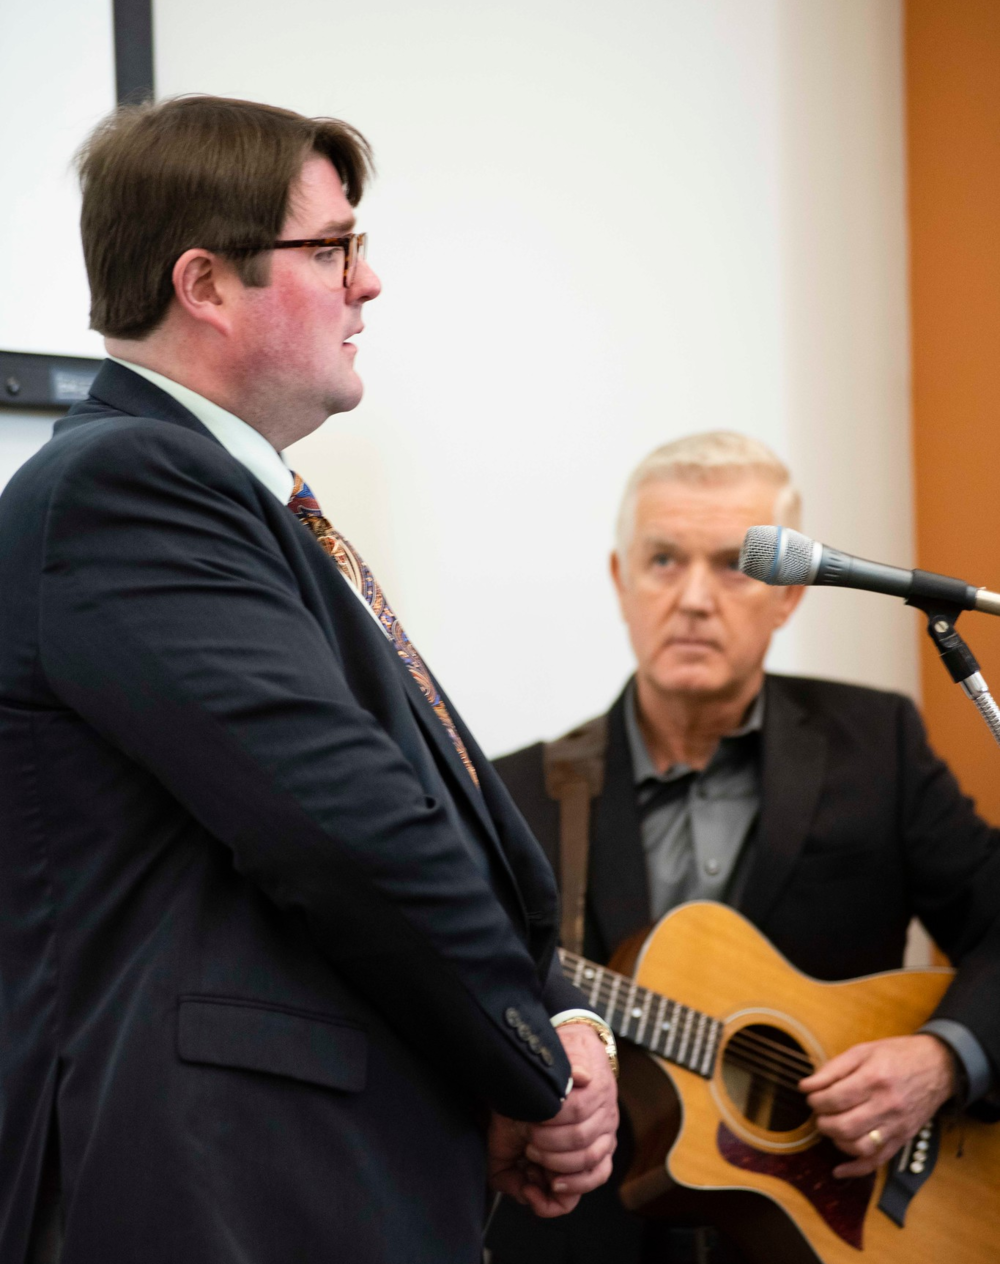 """Above: Bringing the formal part of the Announcement Event to a stirring close, Professor    Jonathan Murphy    of Georgia Southern University's Department of Music and Center for Irish Research and Teaching gave a truly memorable performance of """"Danny Boy,"""" accompanied on guitar by    Harry O'Donoghue   ."""